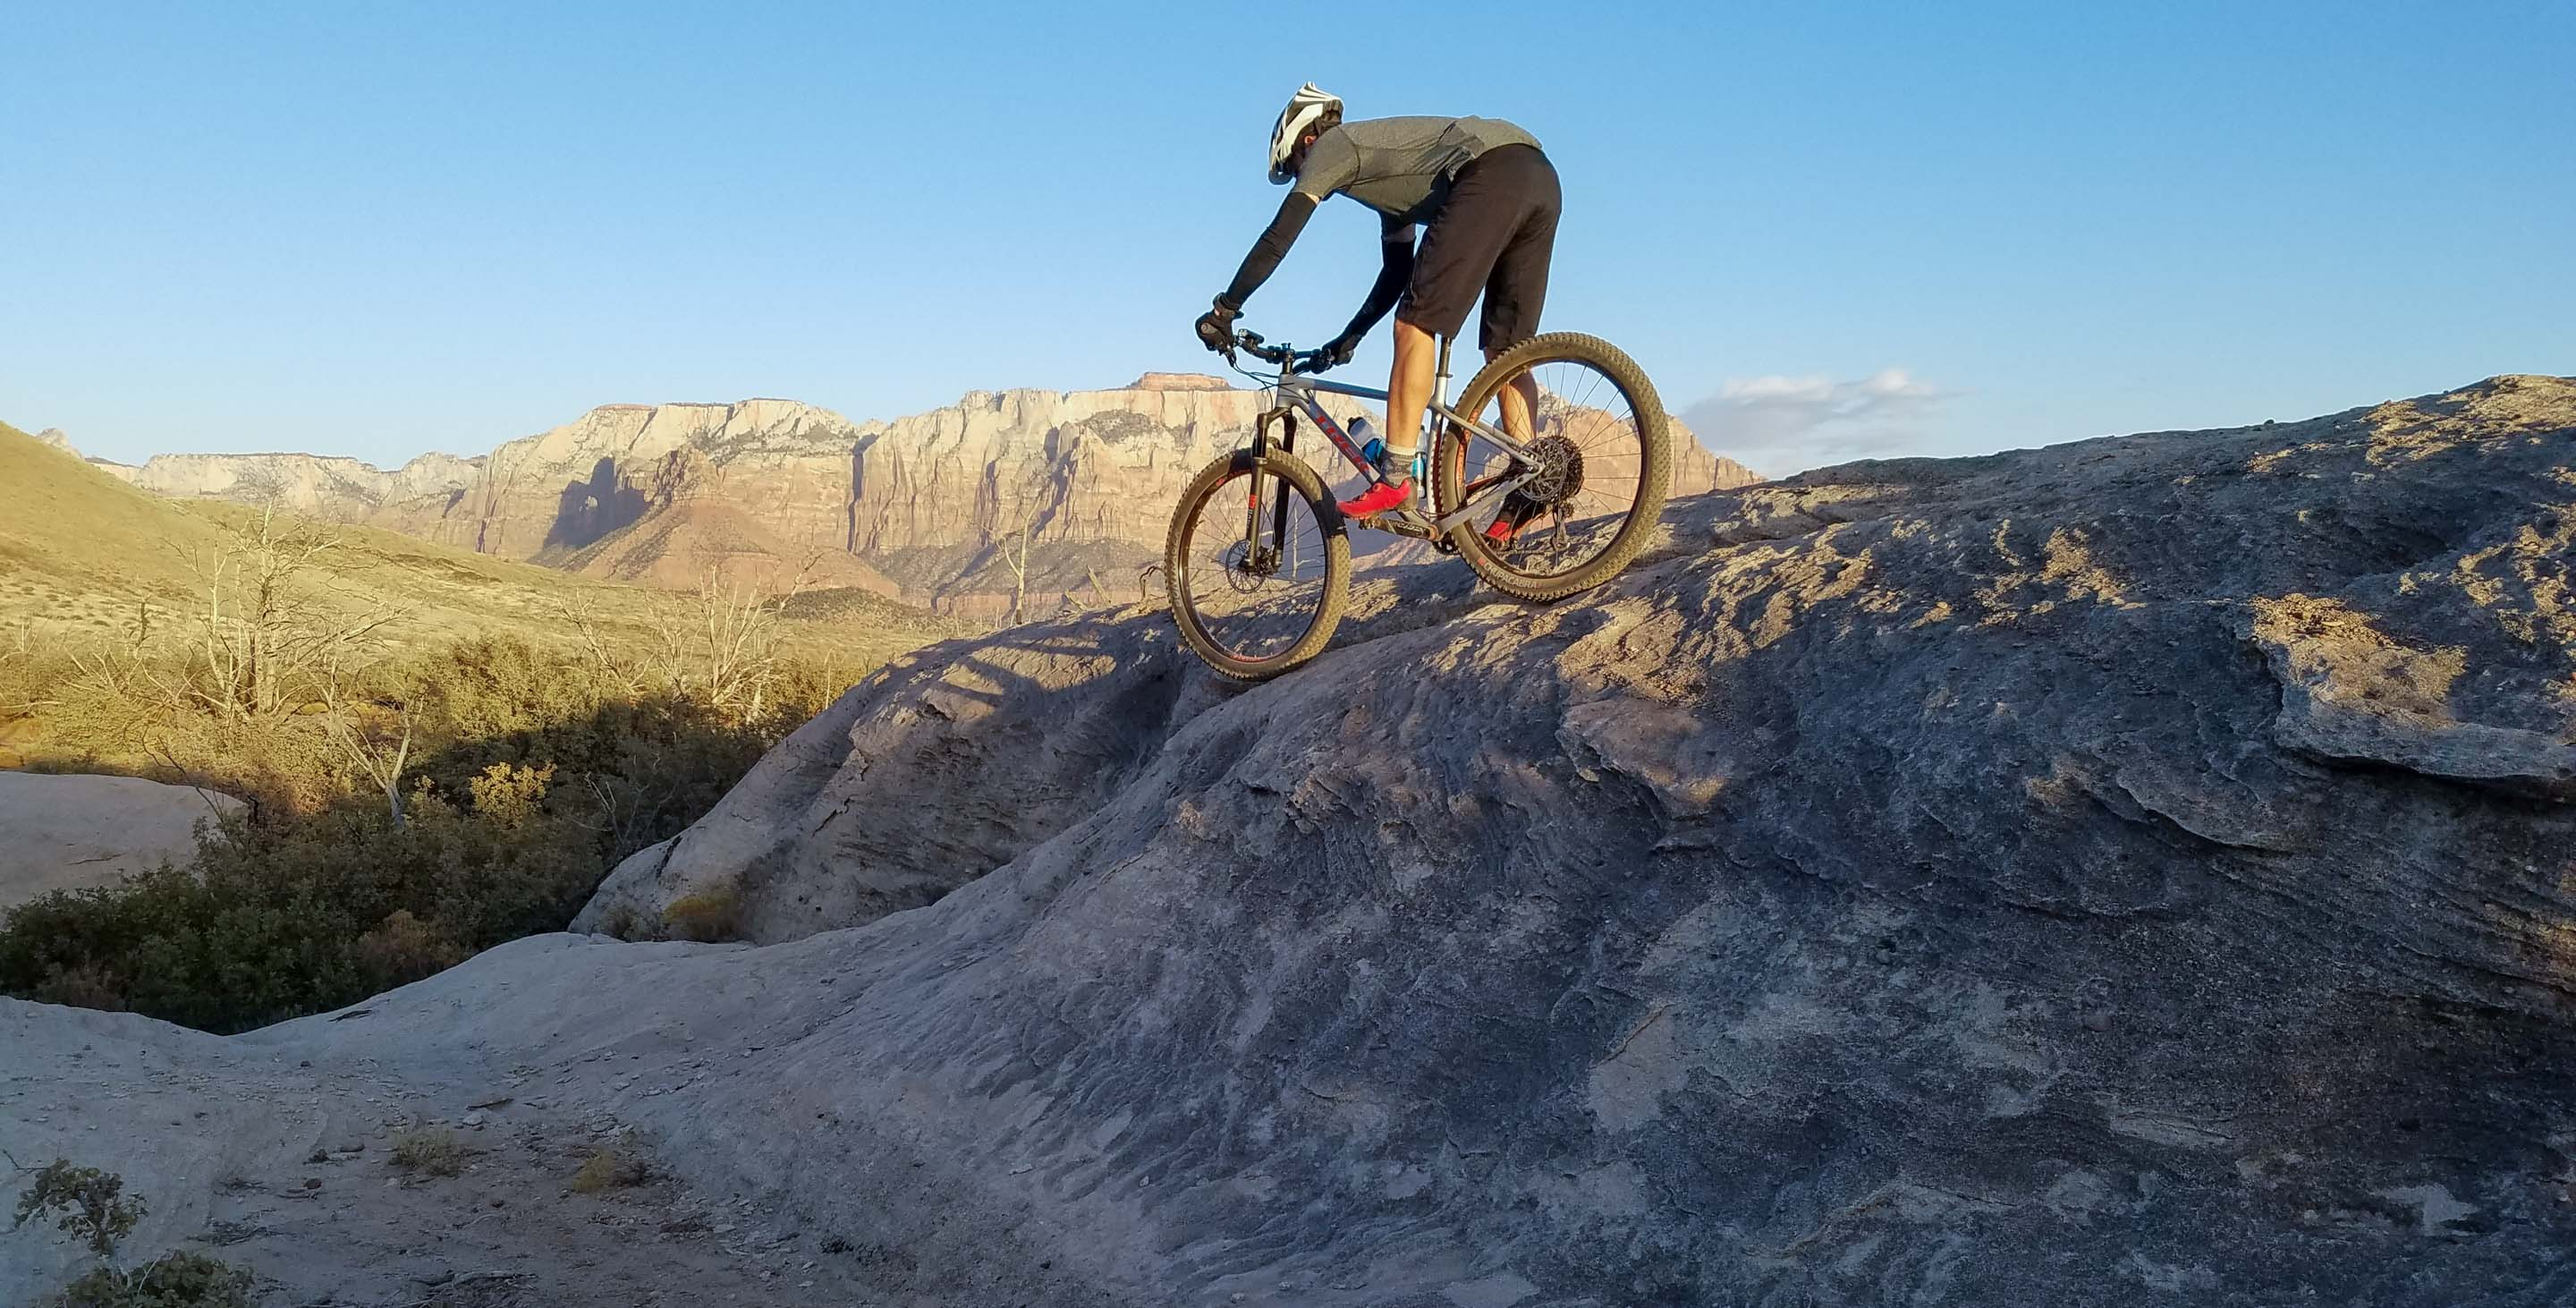 Mountain biker descends rocks on Gooseberry Mesa trail tour